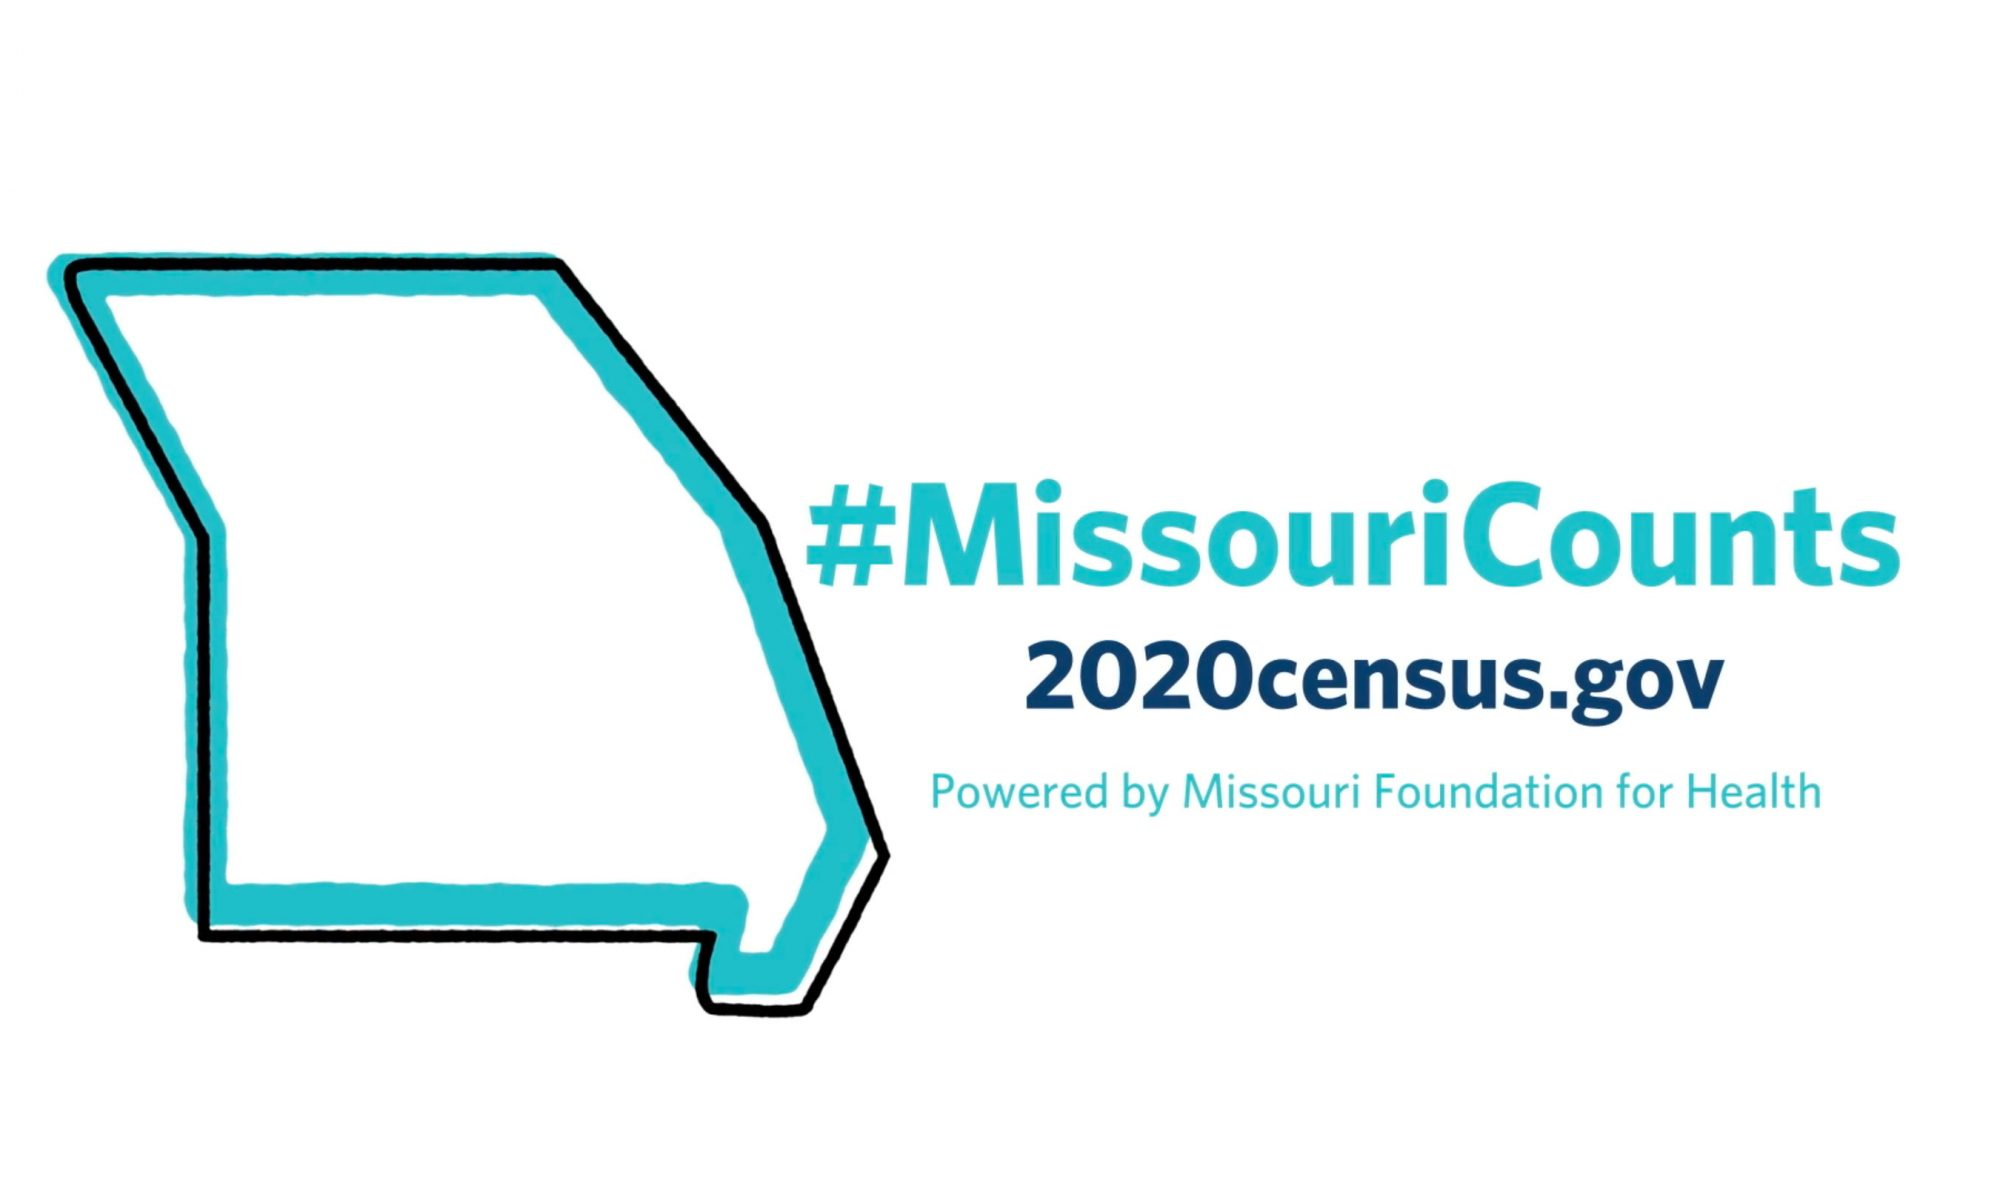 Learn More About the Missouri 2020 Census